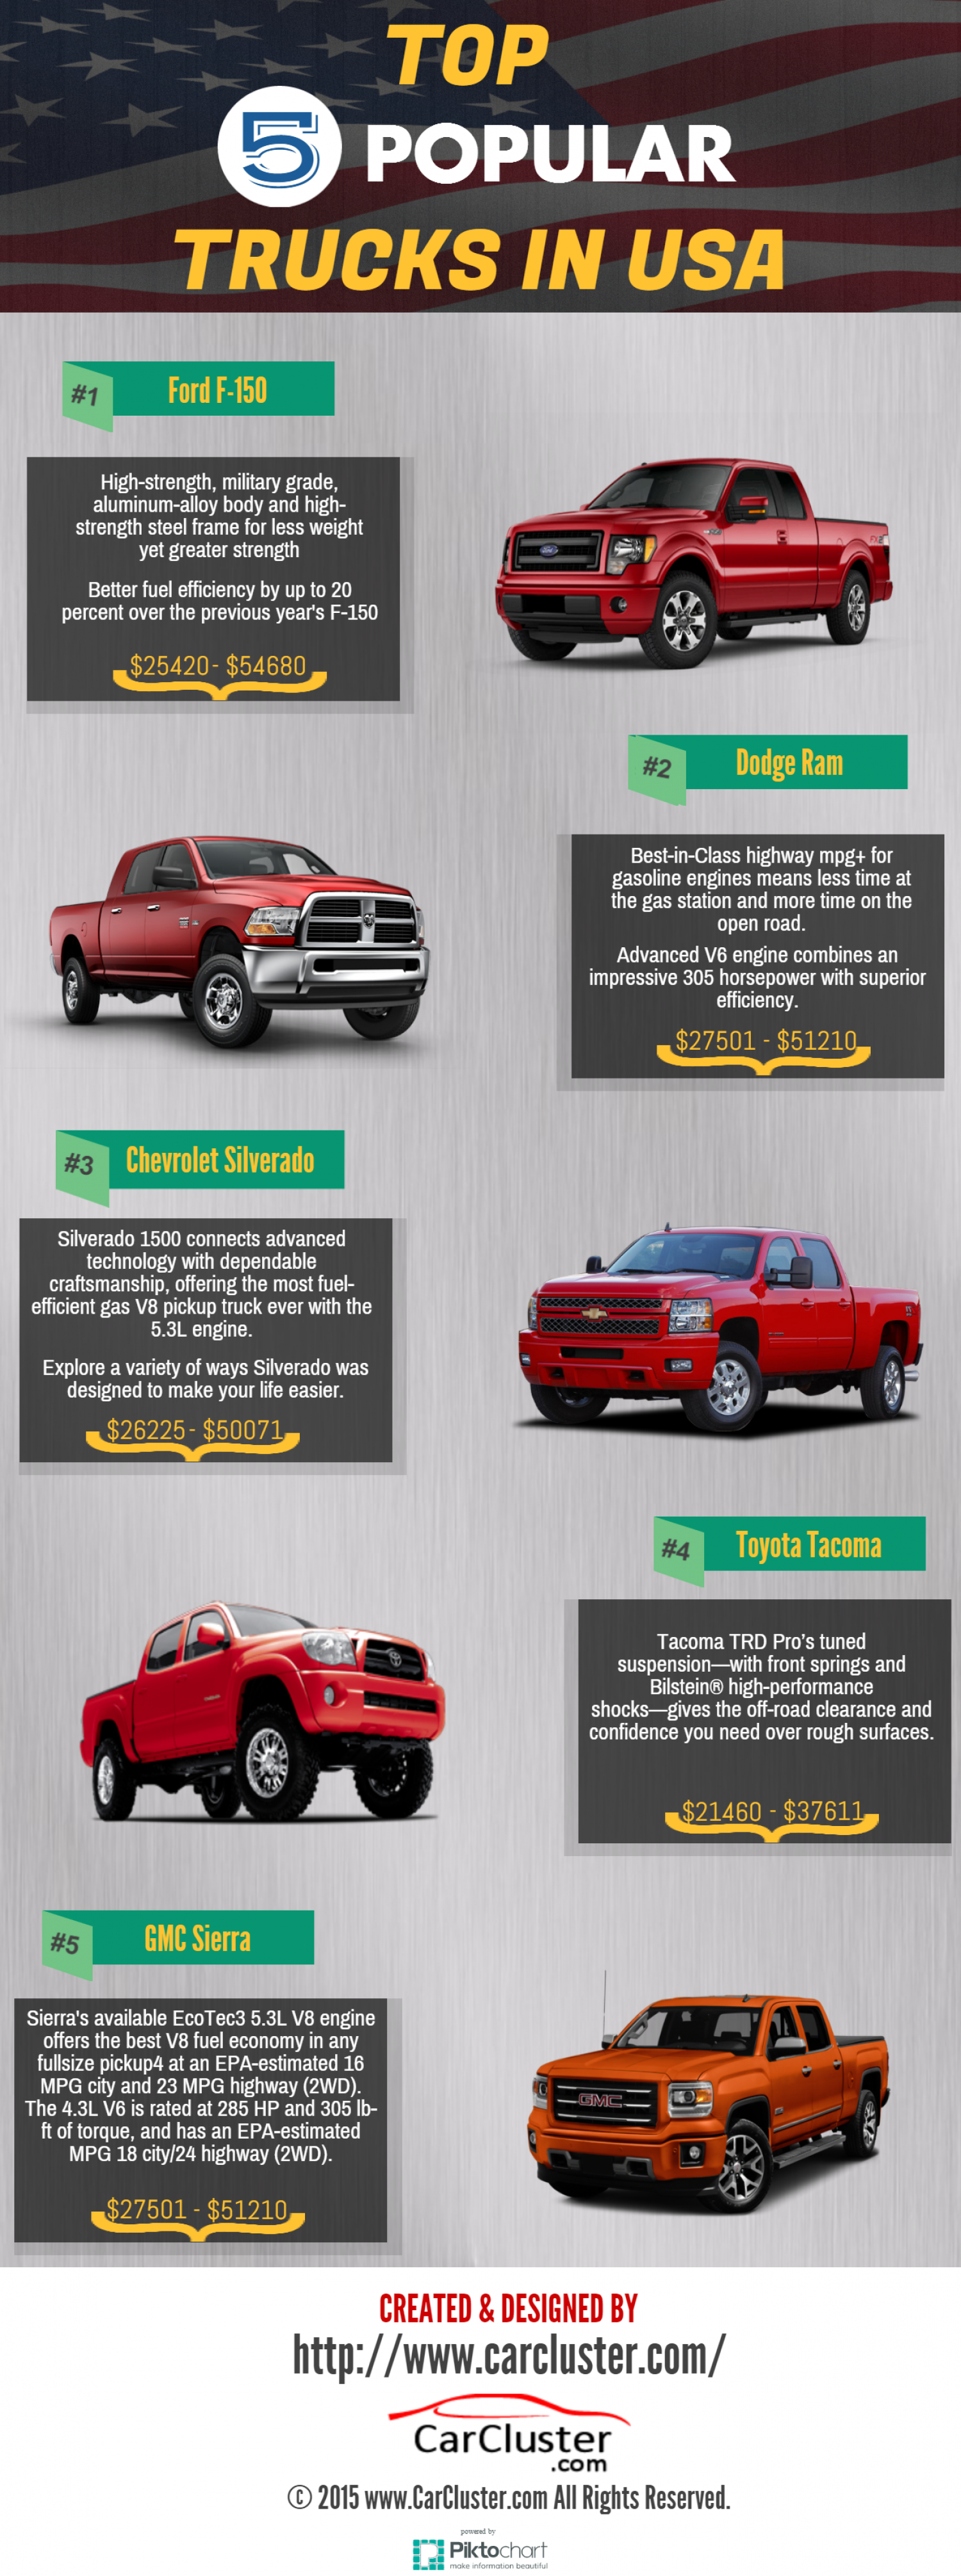 Top 5 Popular Trucks In USA Infographic